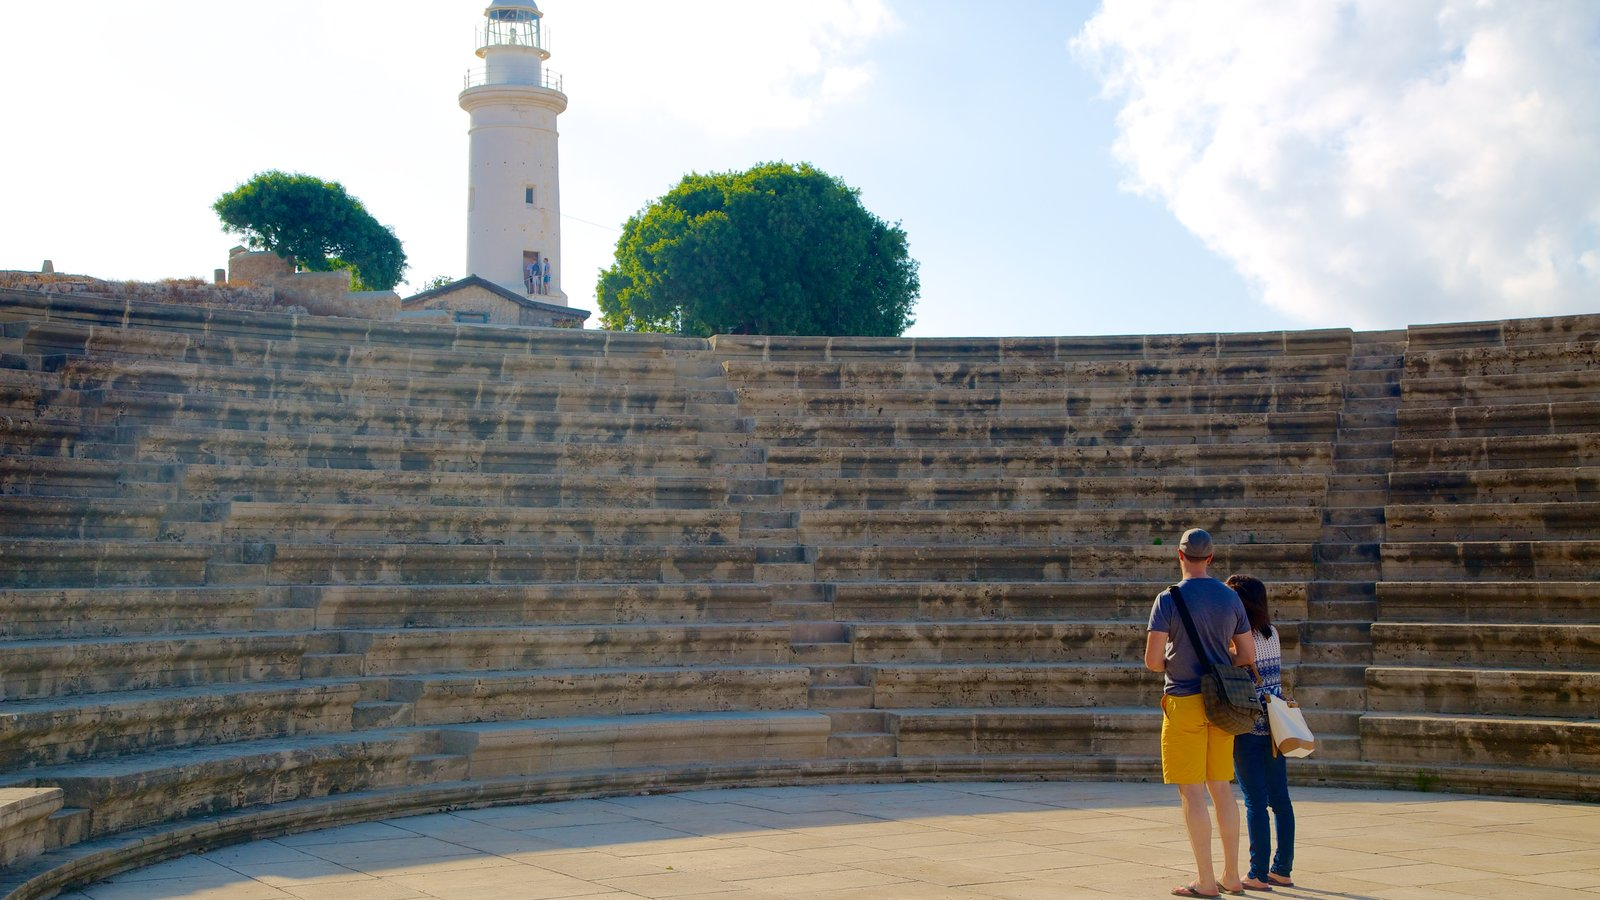 Paphos featuring heritage elements as well as a couple